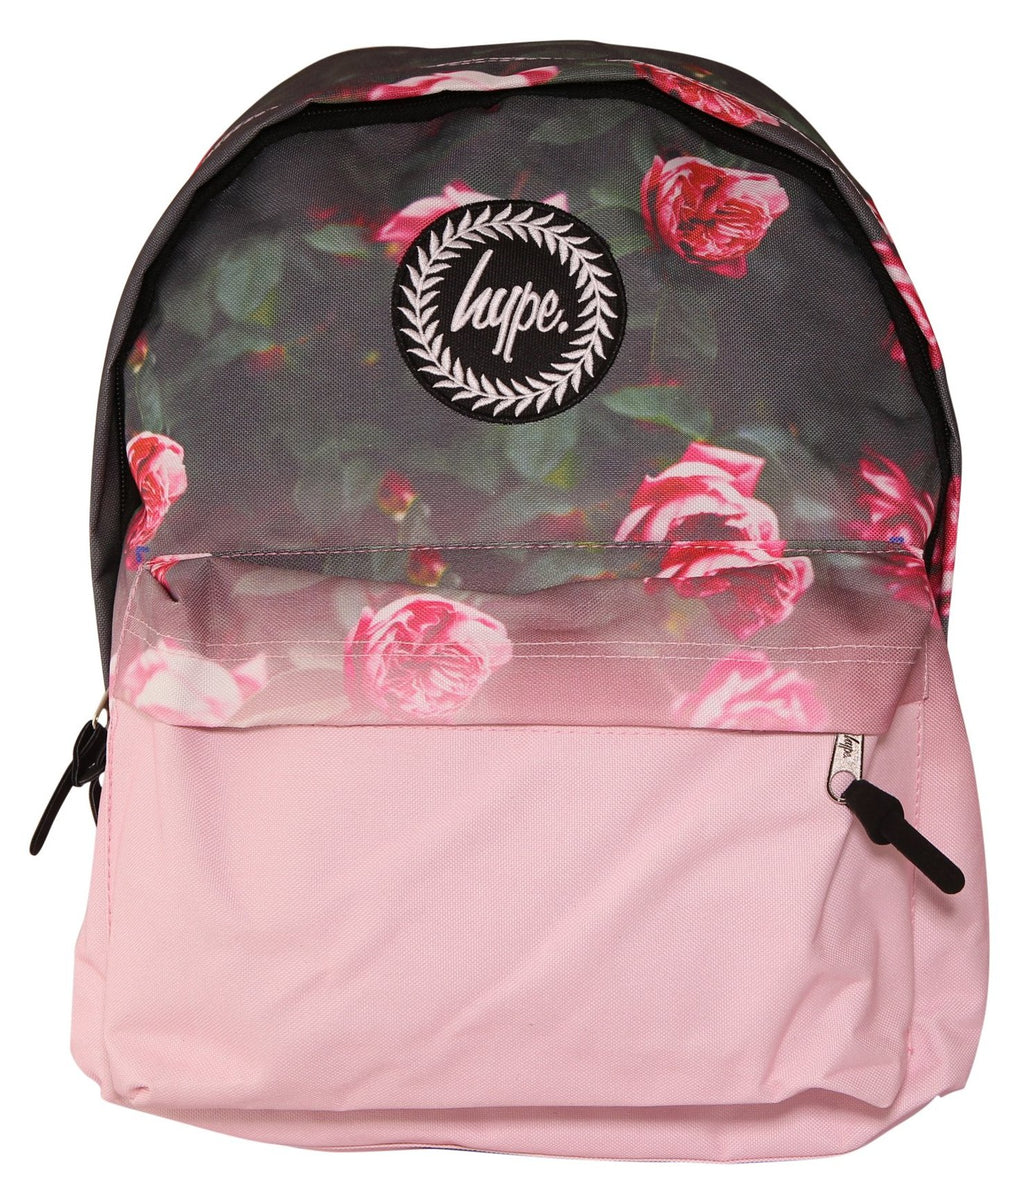 HYPE ROSE FADE BACKPACK RUCKSACK BAG - MULTI/PINK